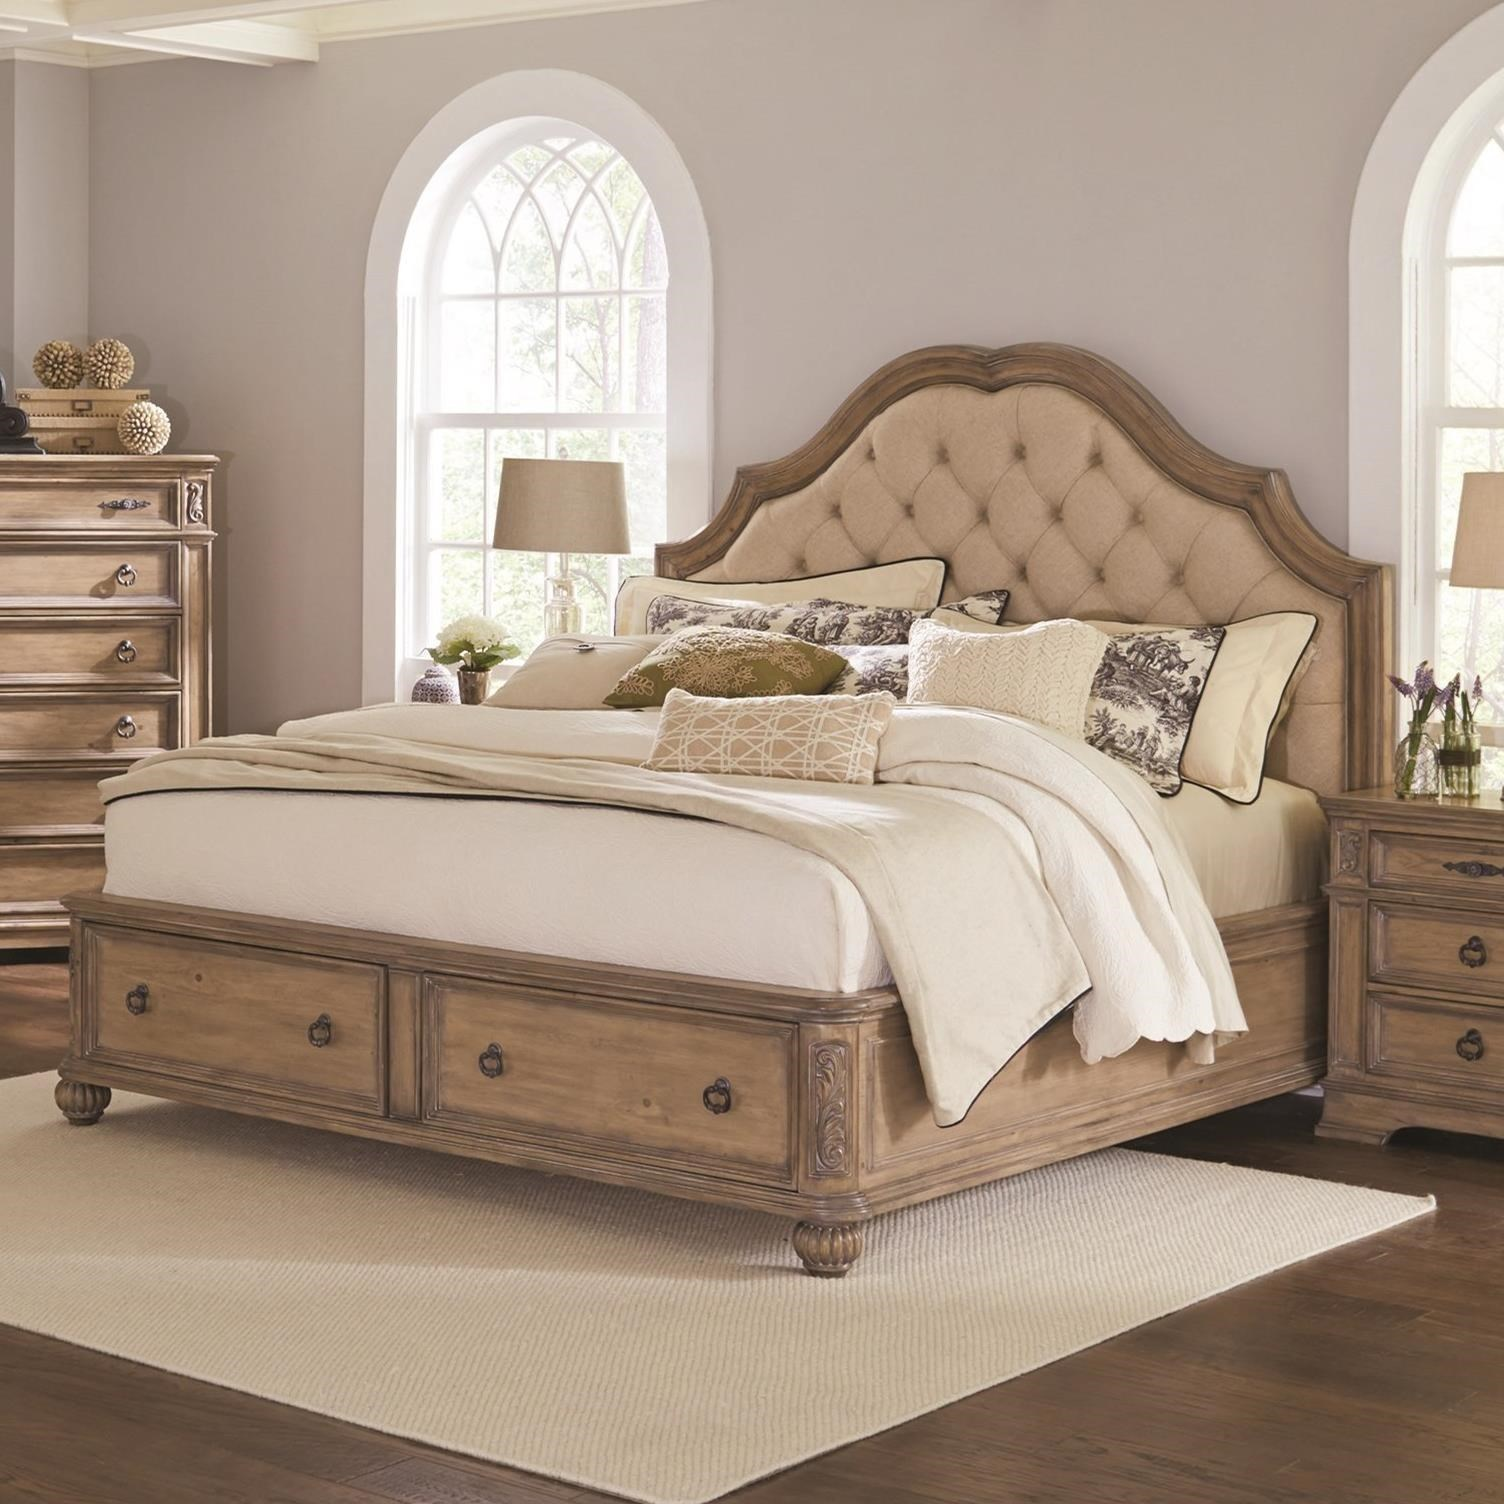 Ilana King Storage Bed by Coaster at Northeast Factory Direct